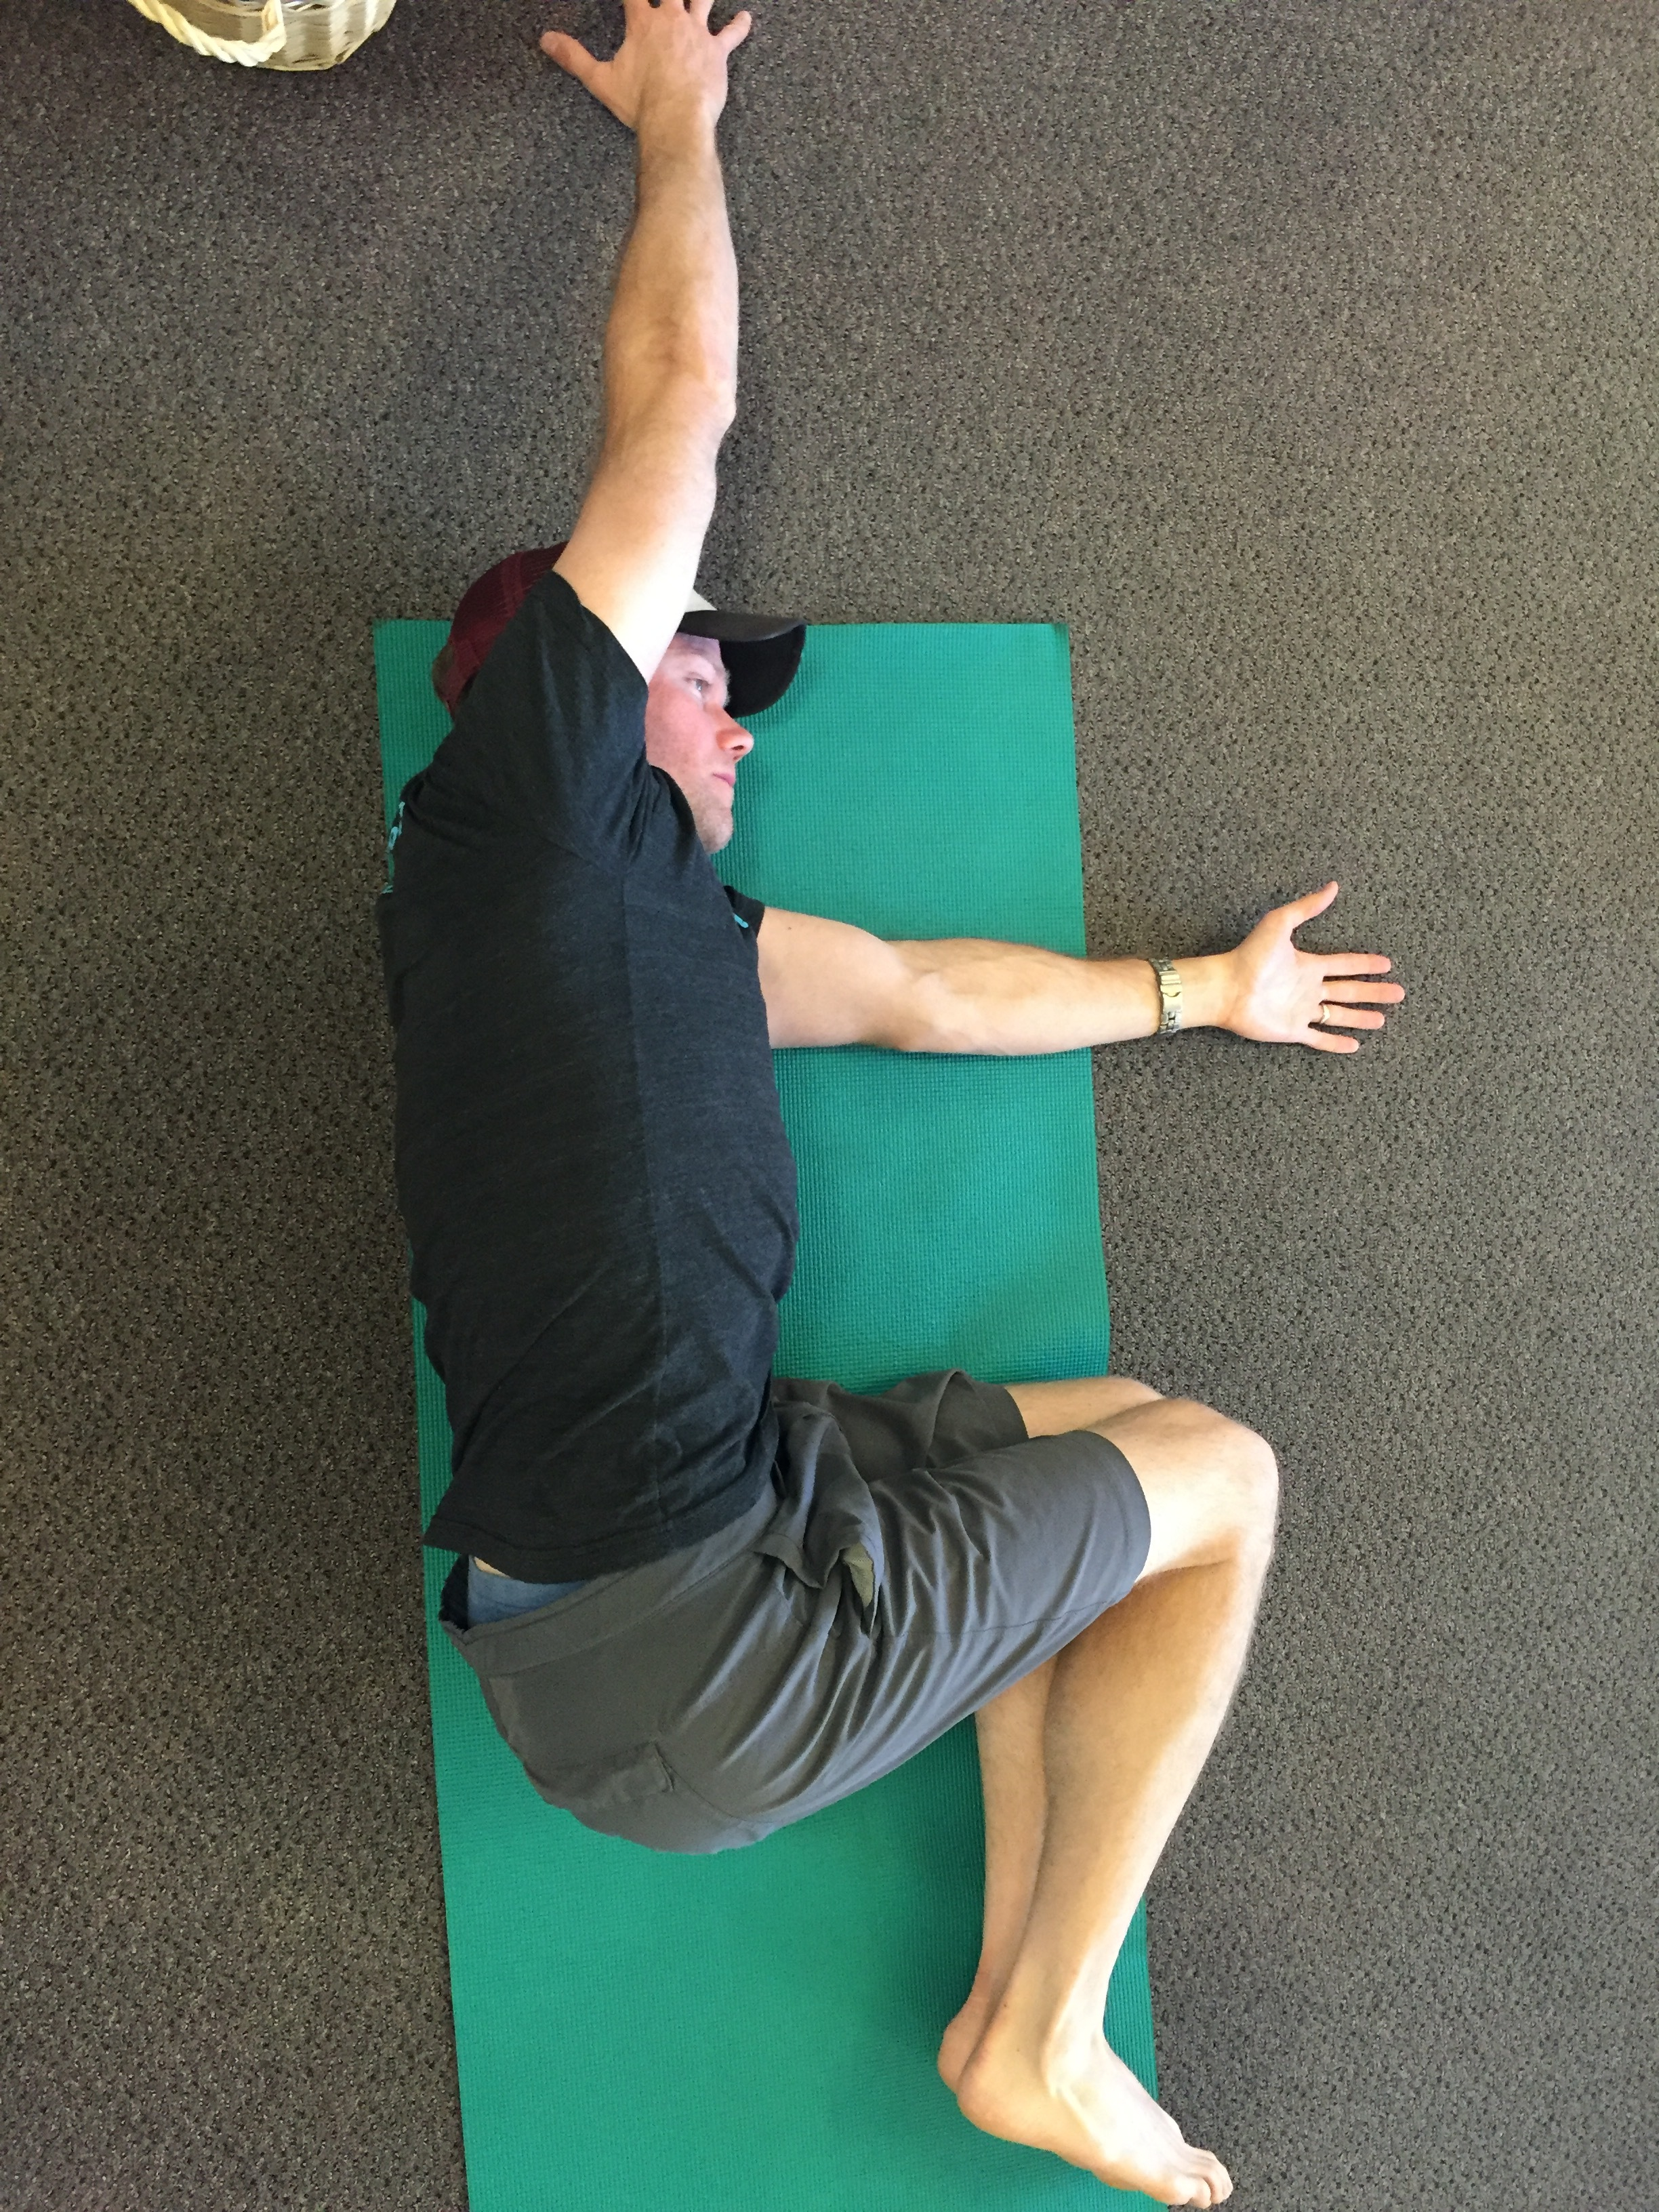 shoulder-exercise-mobility-thoracic spine